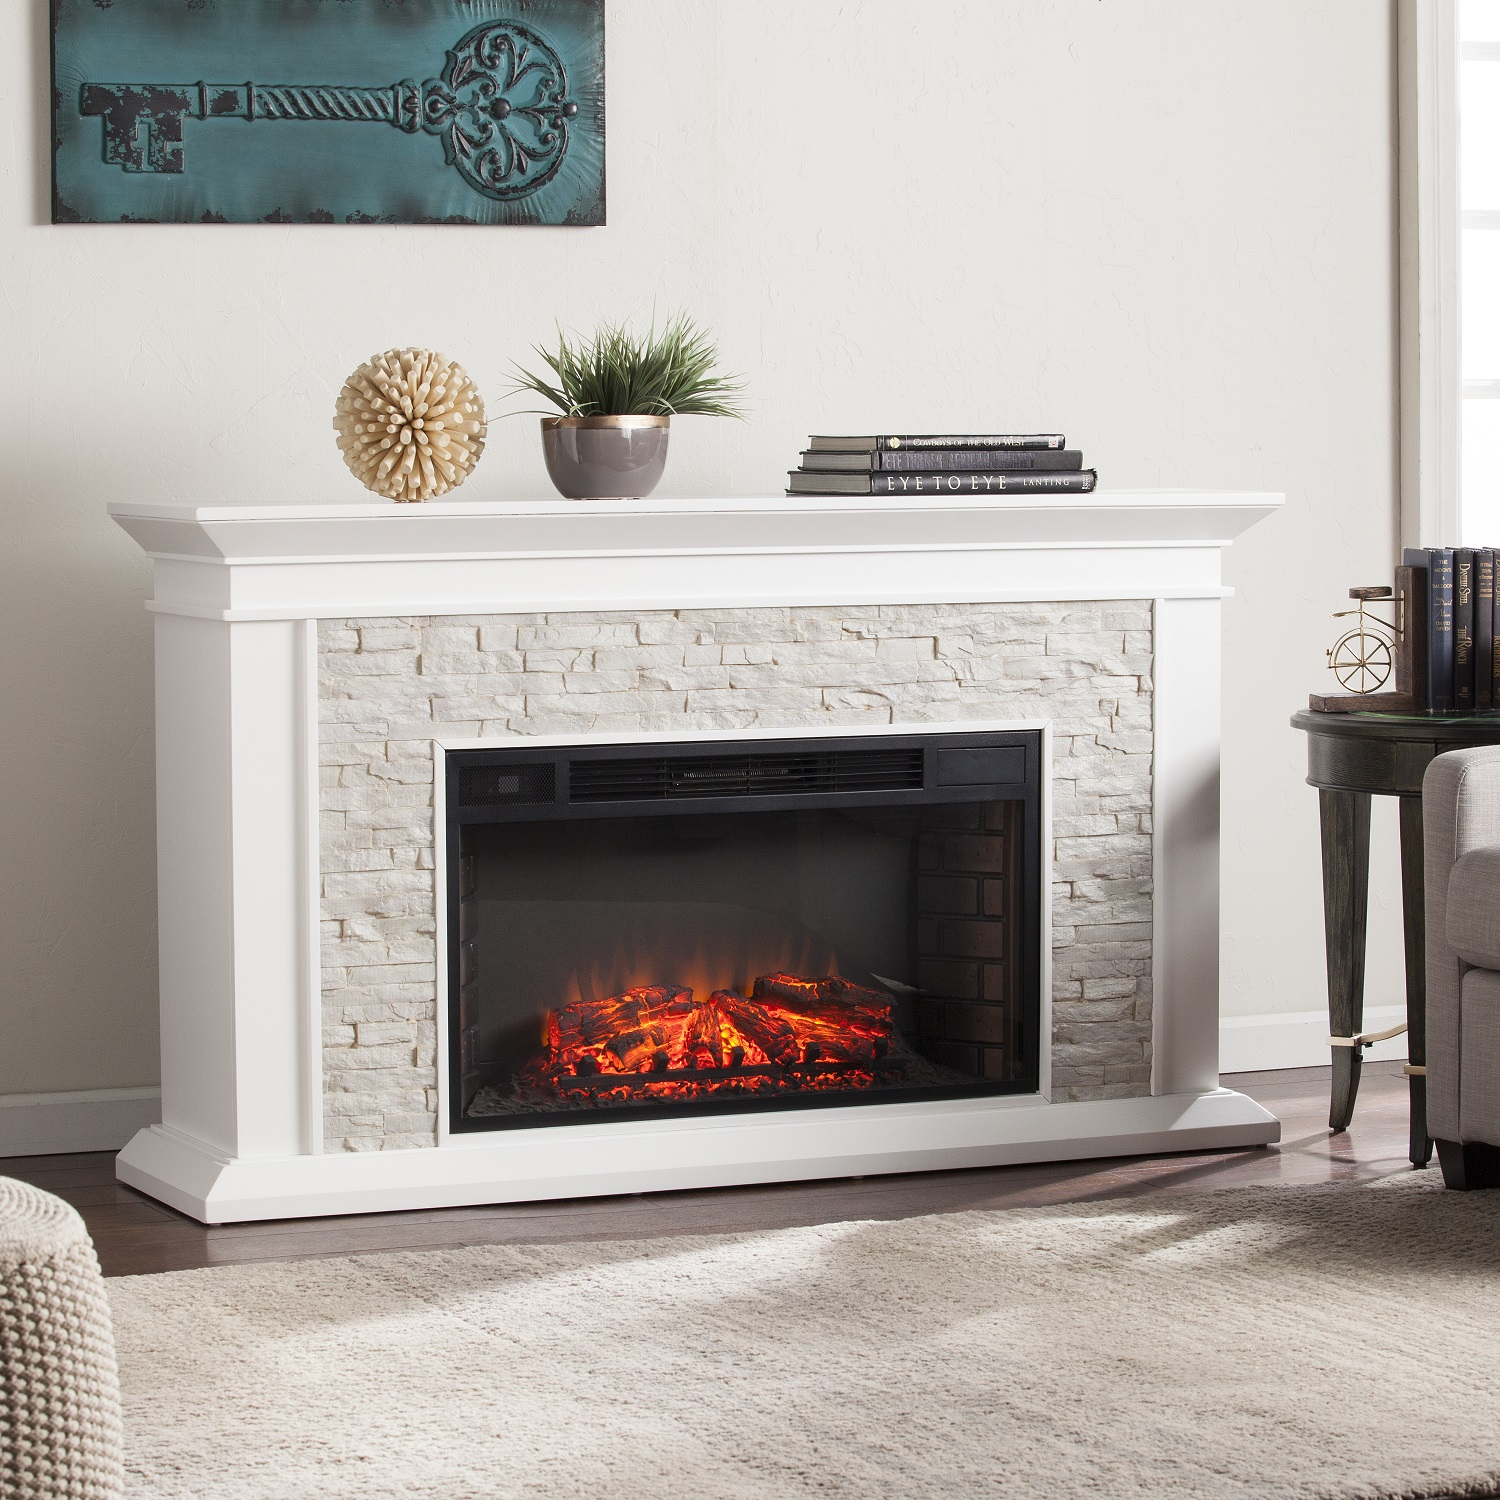 Amazing PortableFireplace.com For Electric Fireplace Stone